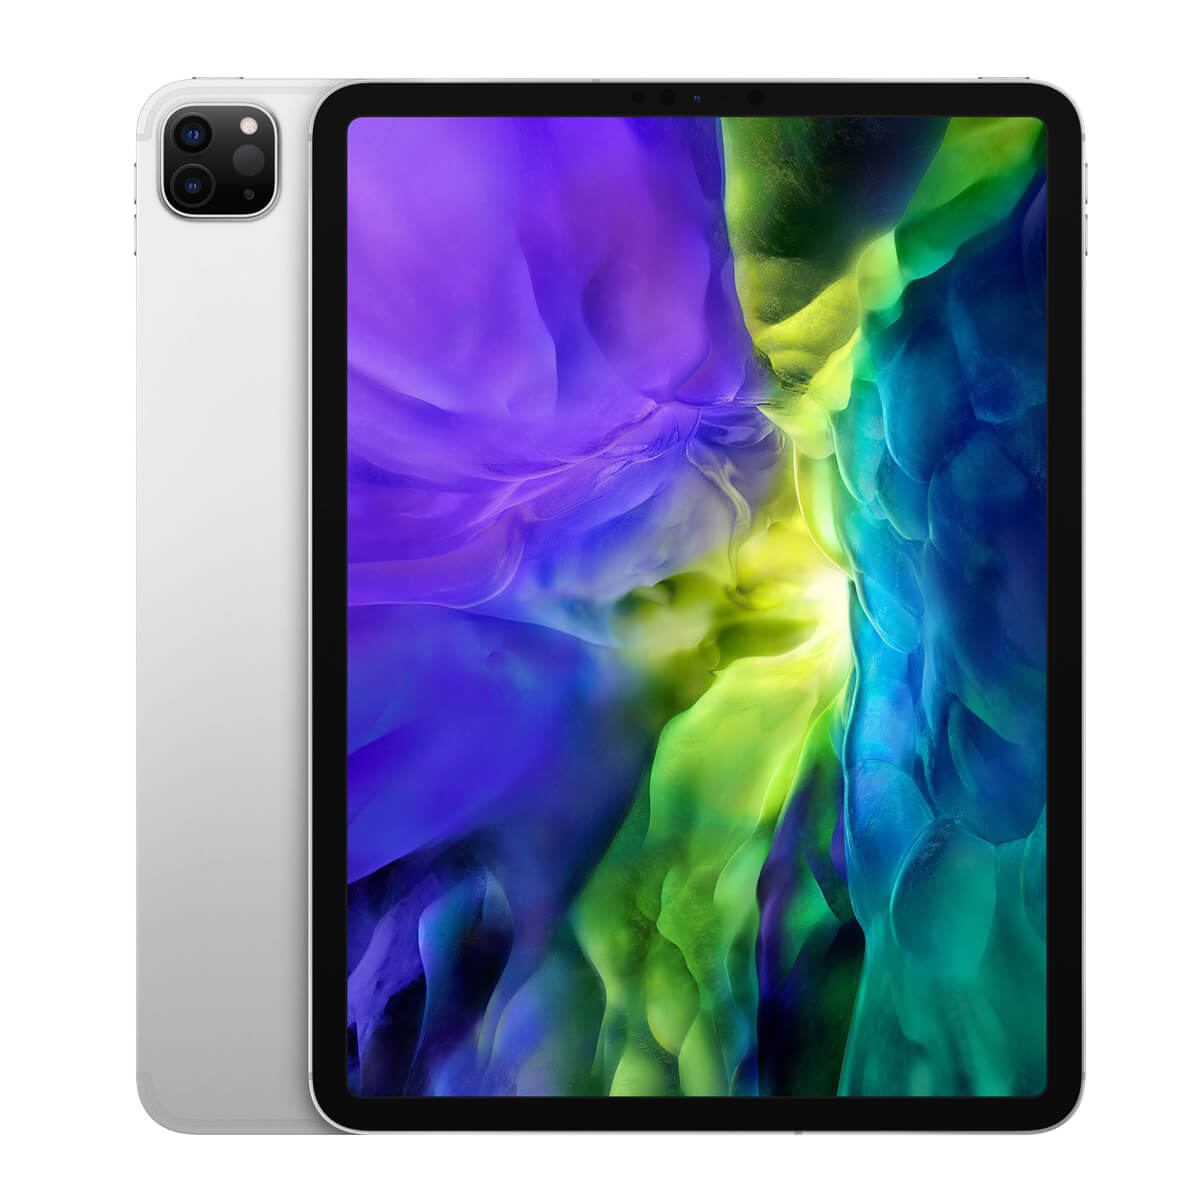 APPLE平板 iPad Pro 11 2代 Wi-Fi (256G)